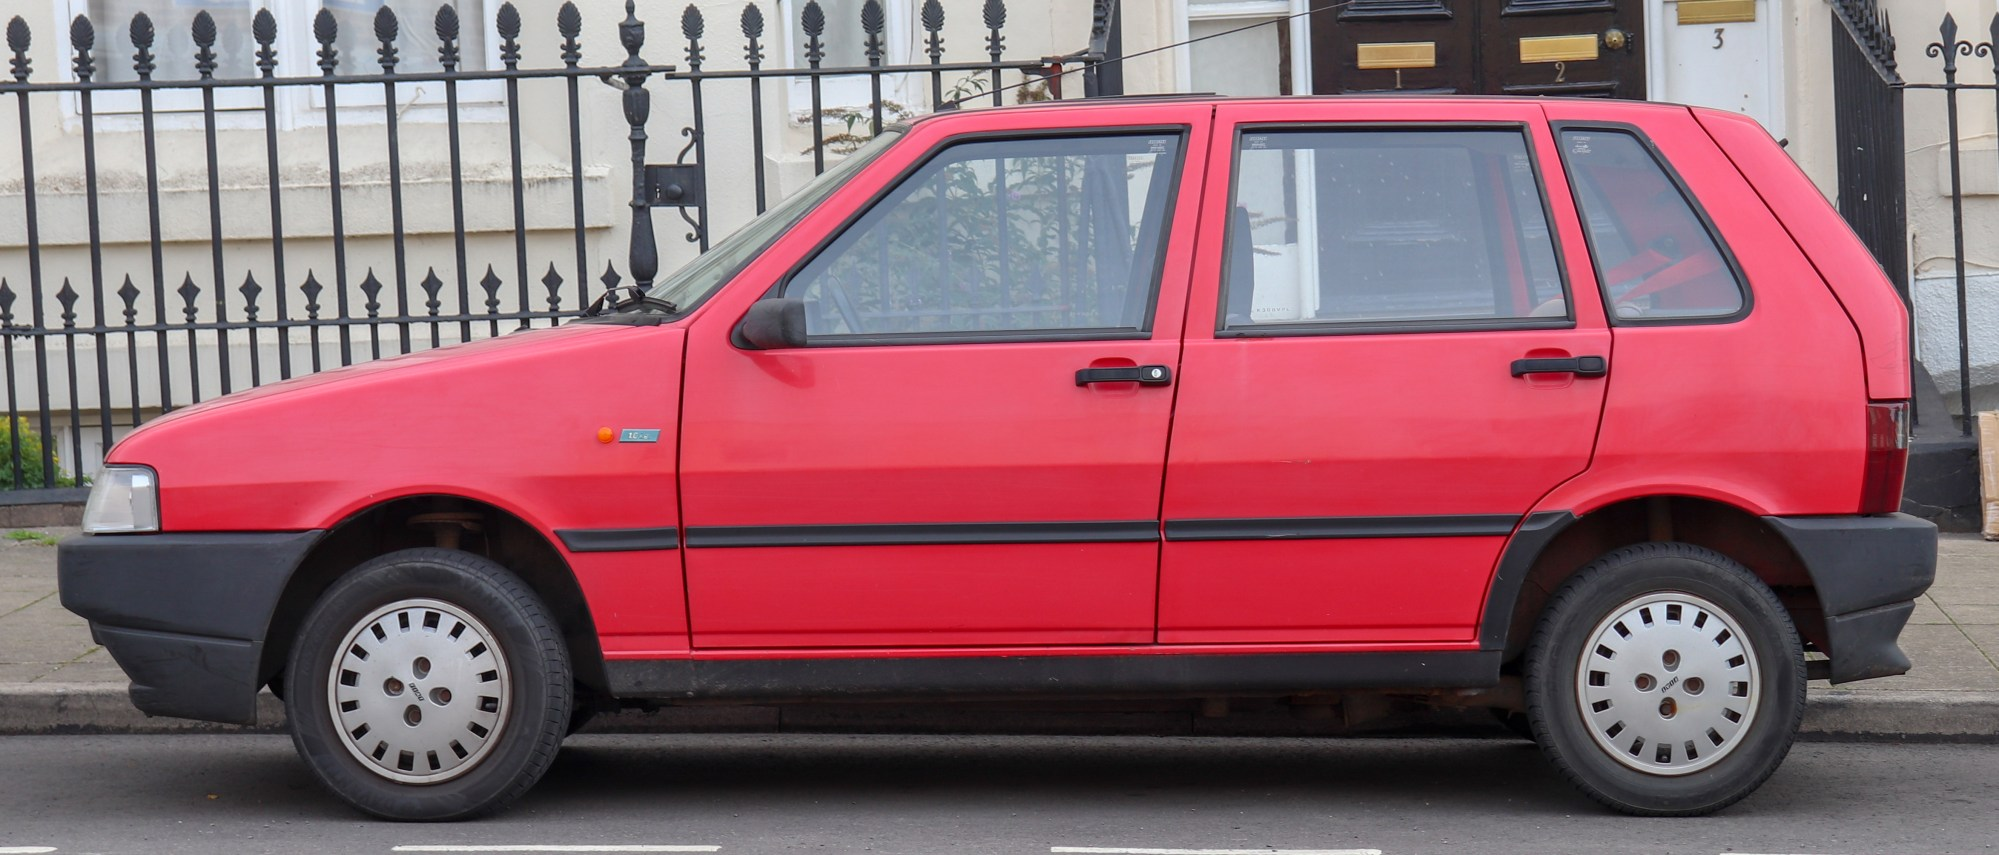 hight resolution of file 1992 fiat uno ie 1 0 side jpg